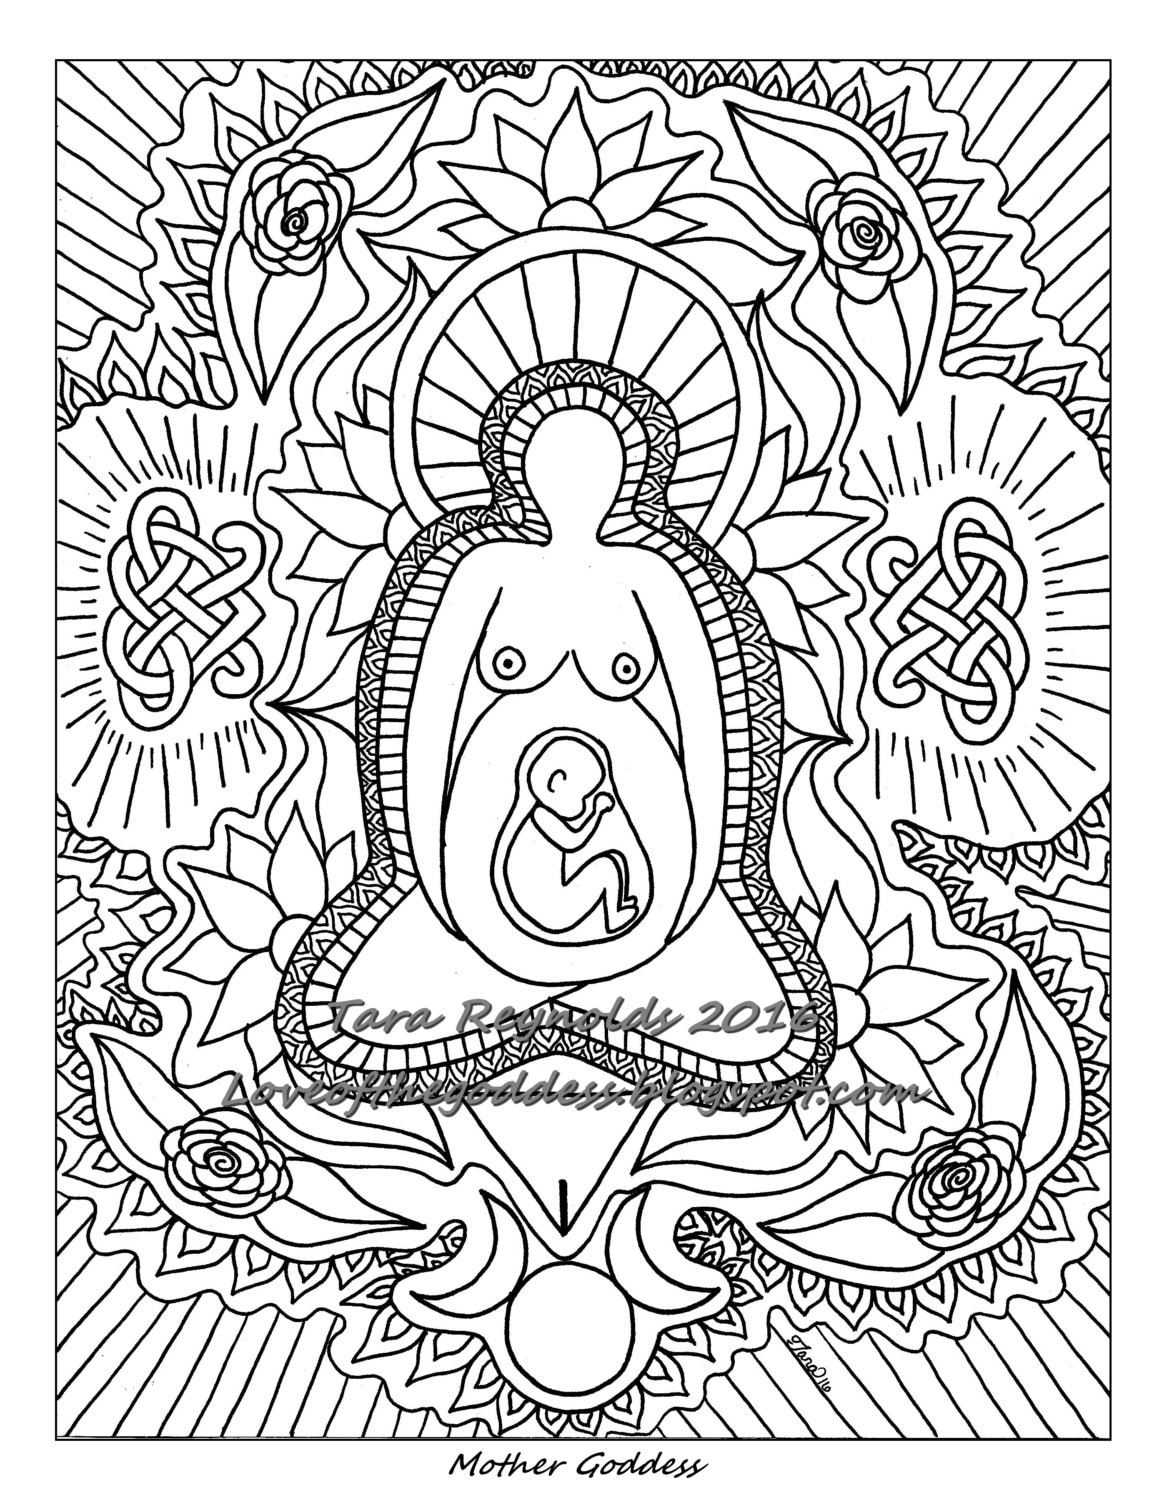 Pagan Art Earth Goddess Art Mandala Coloring Page Divine | Etsy